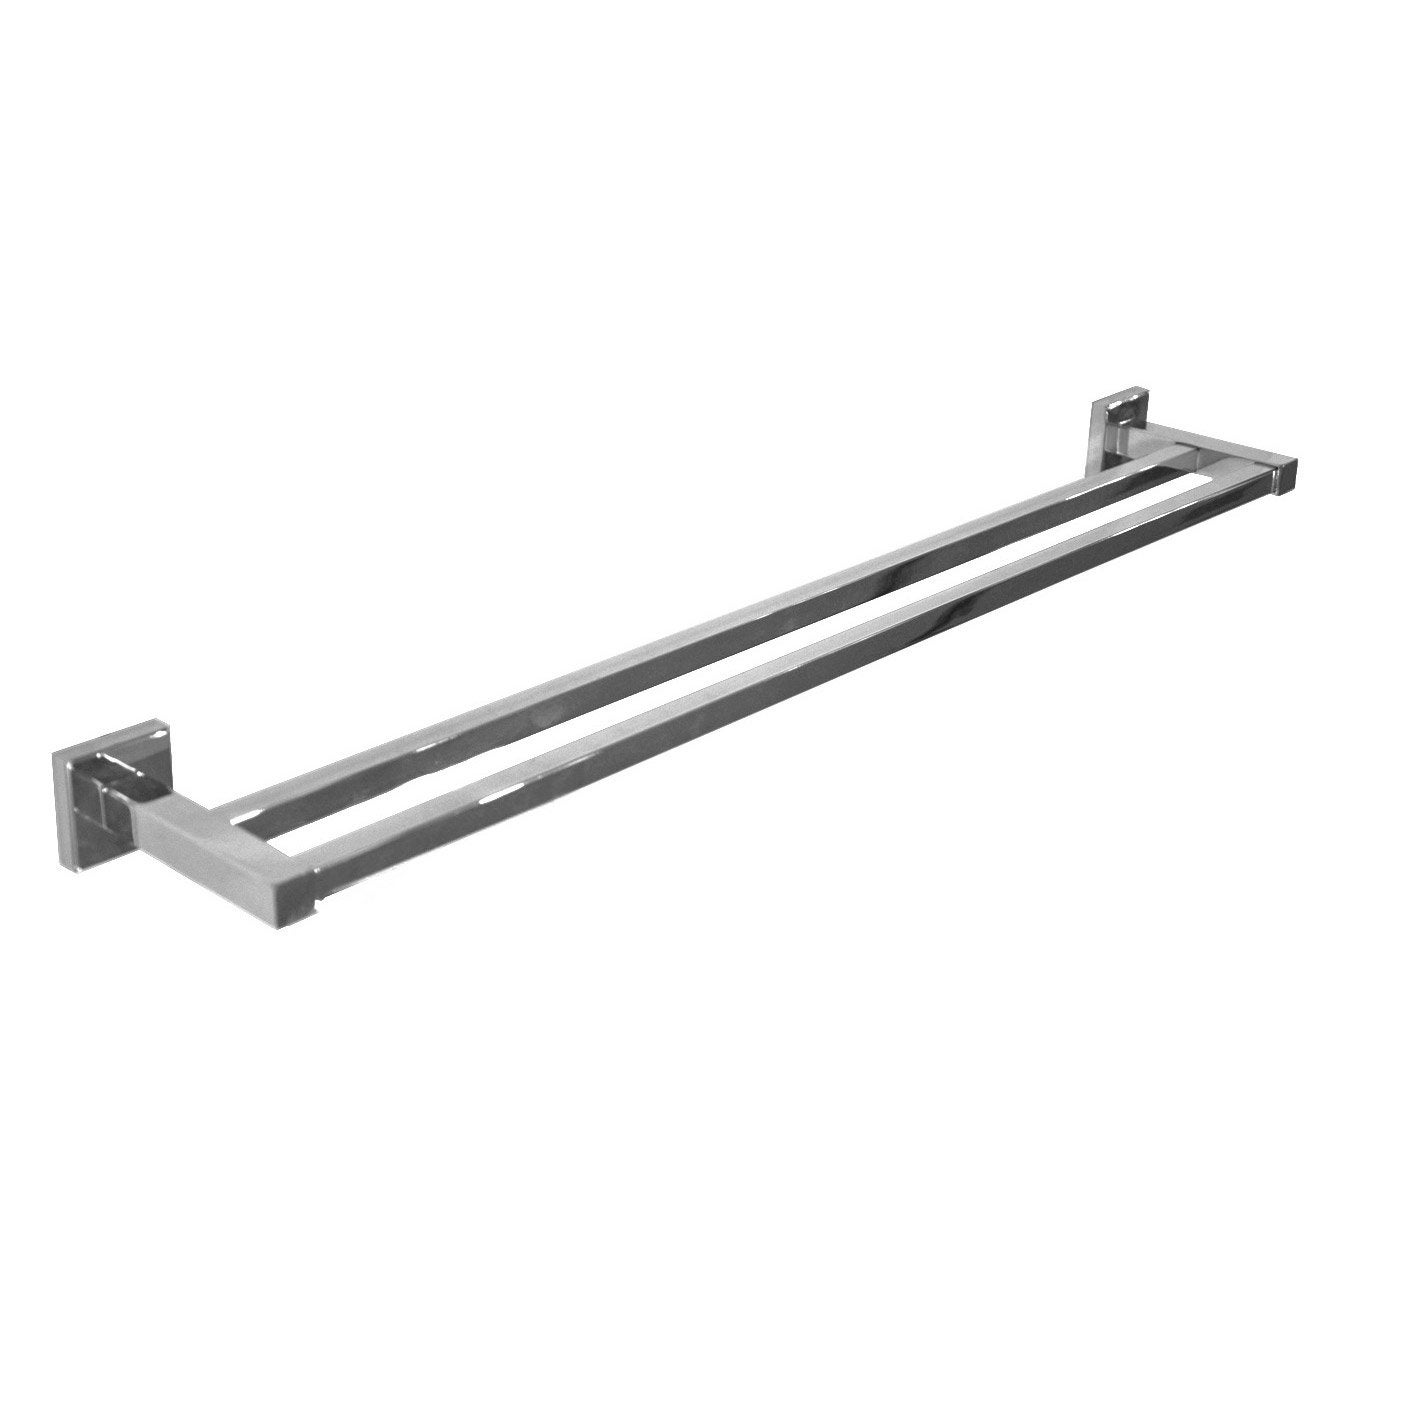 Porte serviettes 2 barres fixes quaddro chrom leroy merlin - Porte serviettes leroy merlin ...